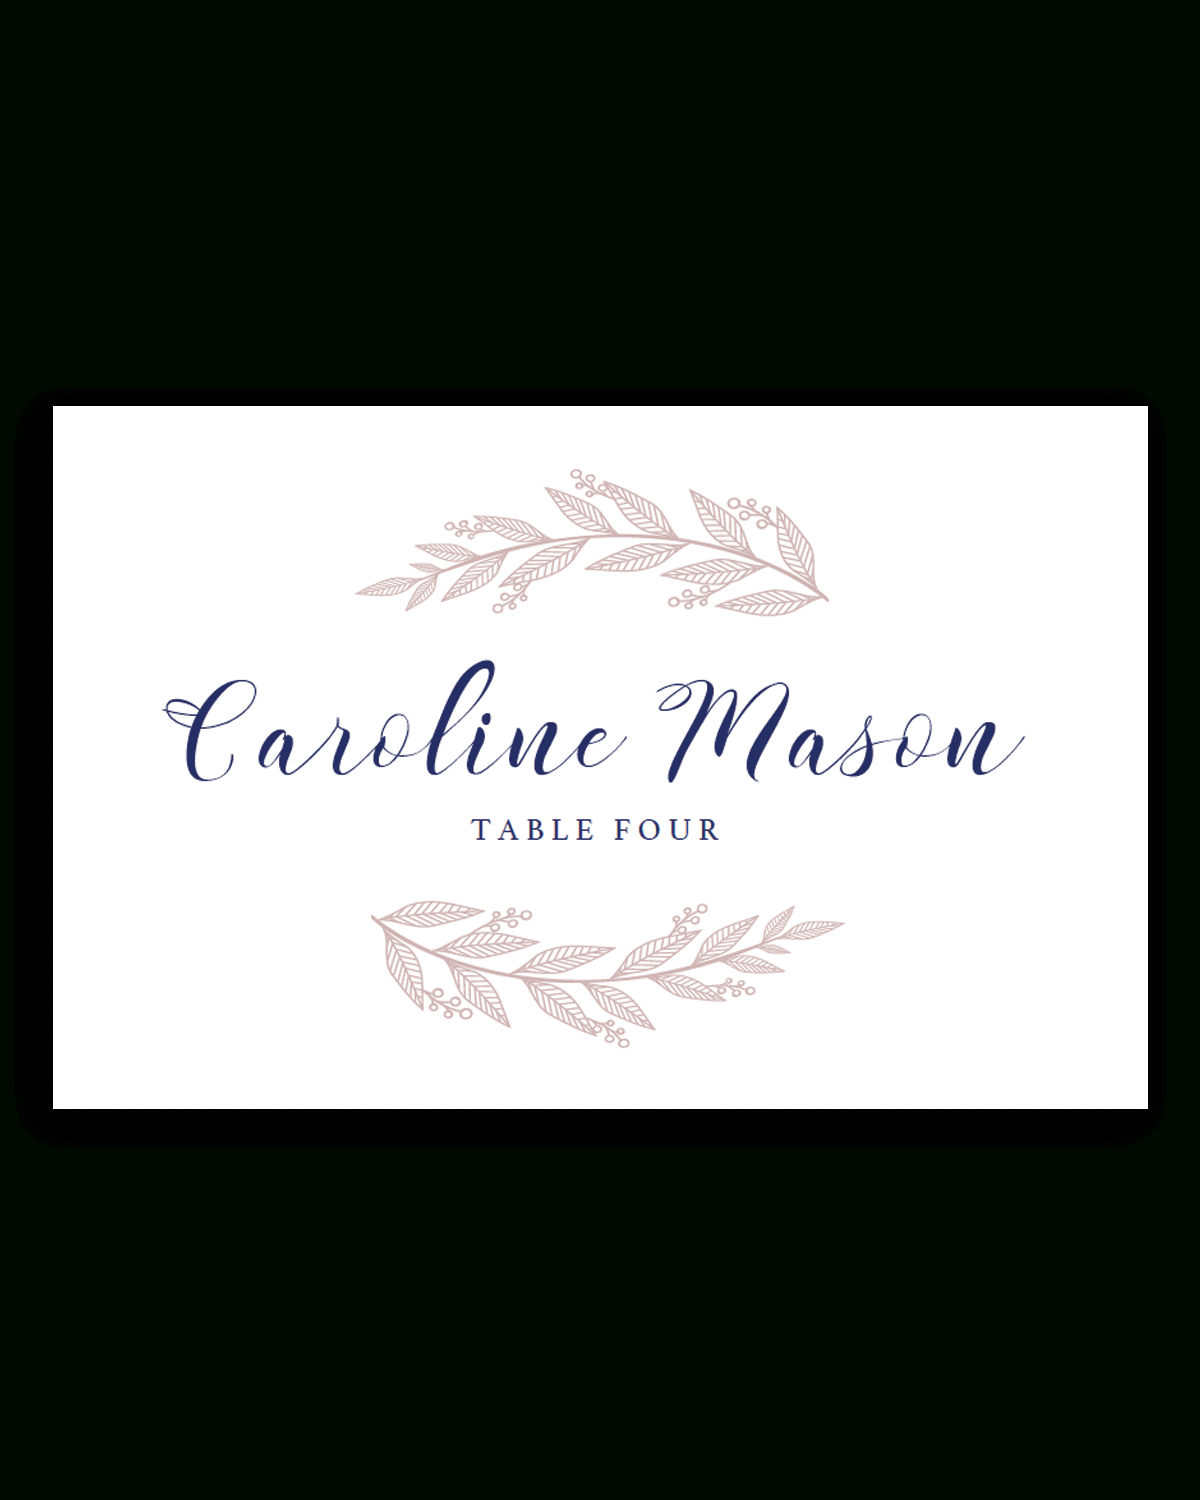 012 Template Ideas Wedding Table Name Cards Il Fullxfull With Regard To Table Name Cards Template Free